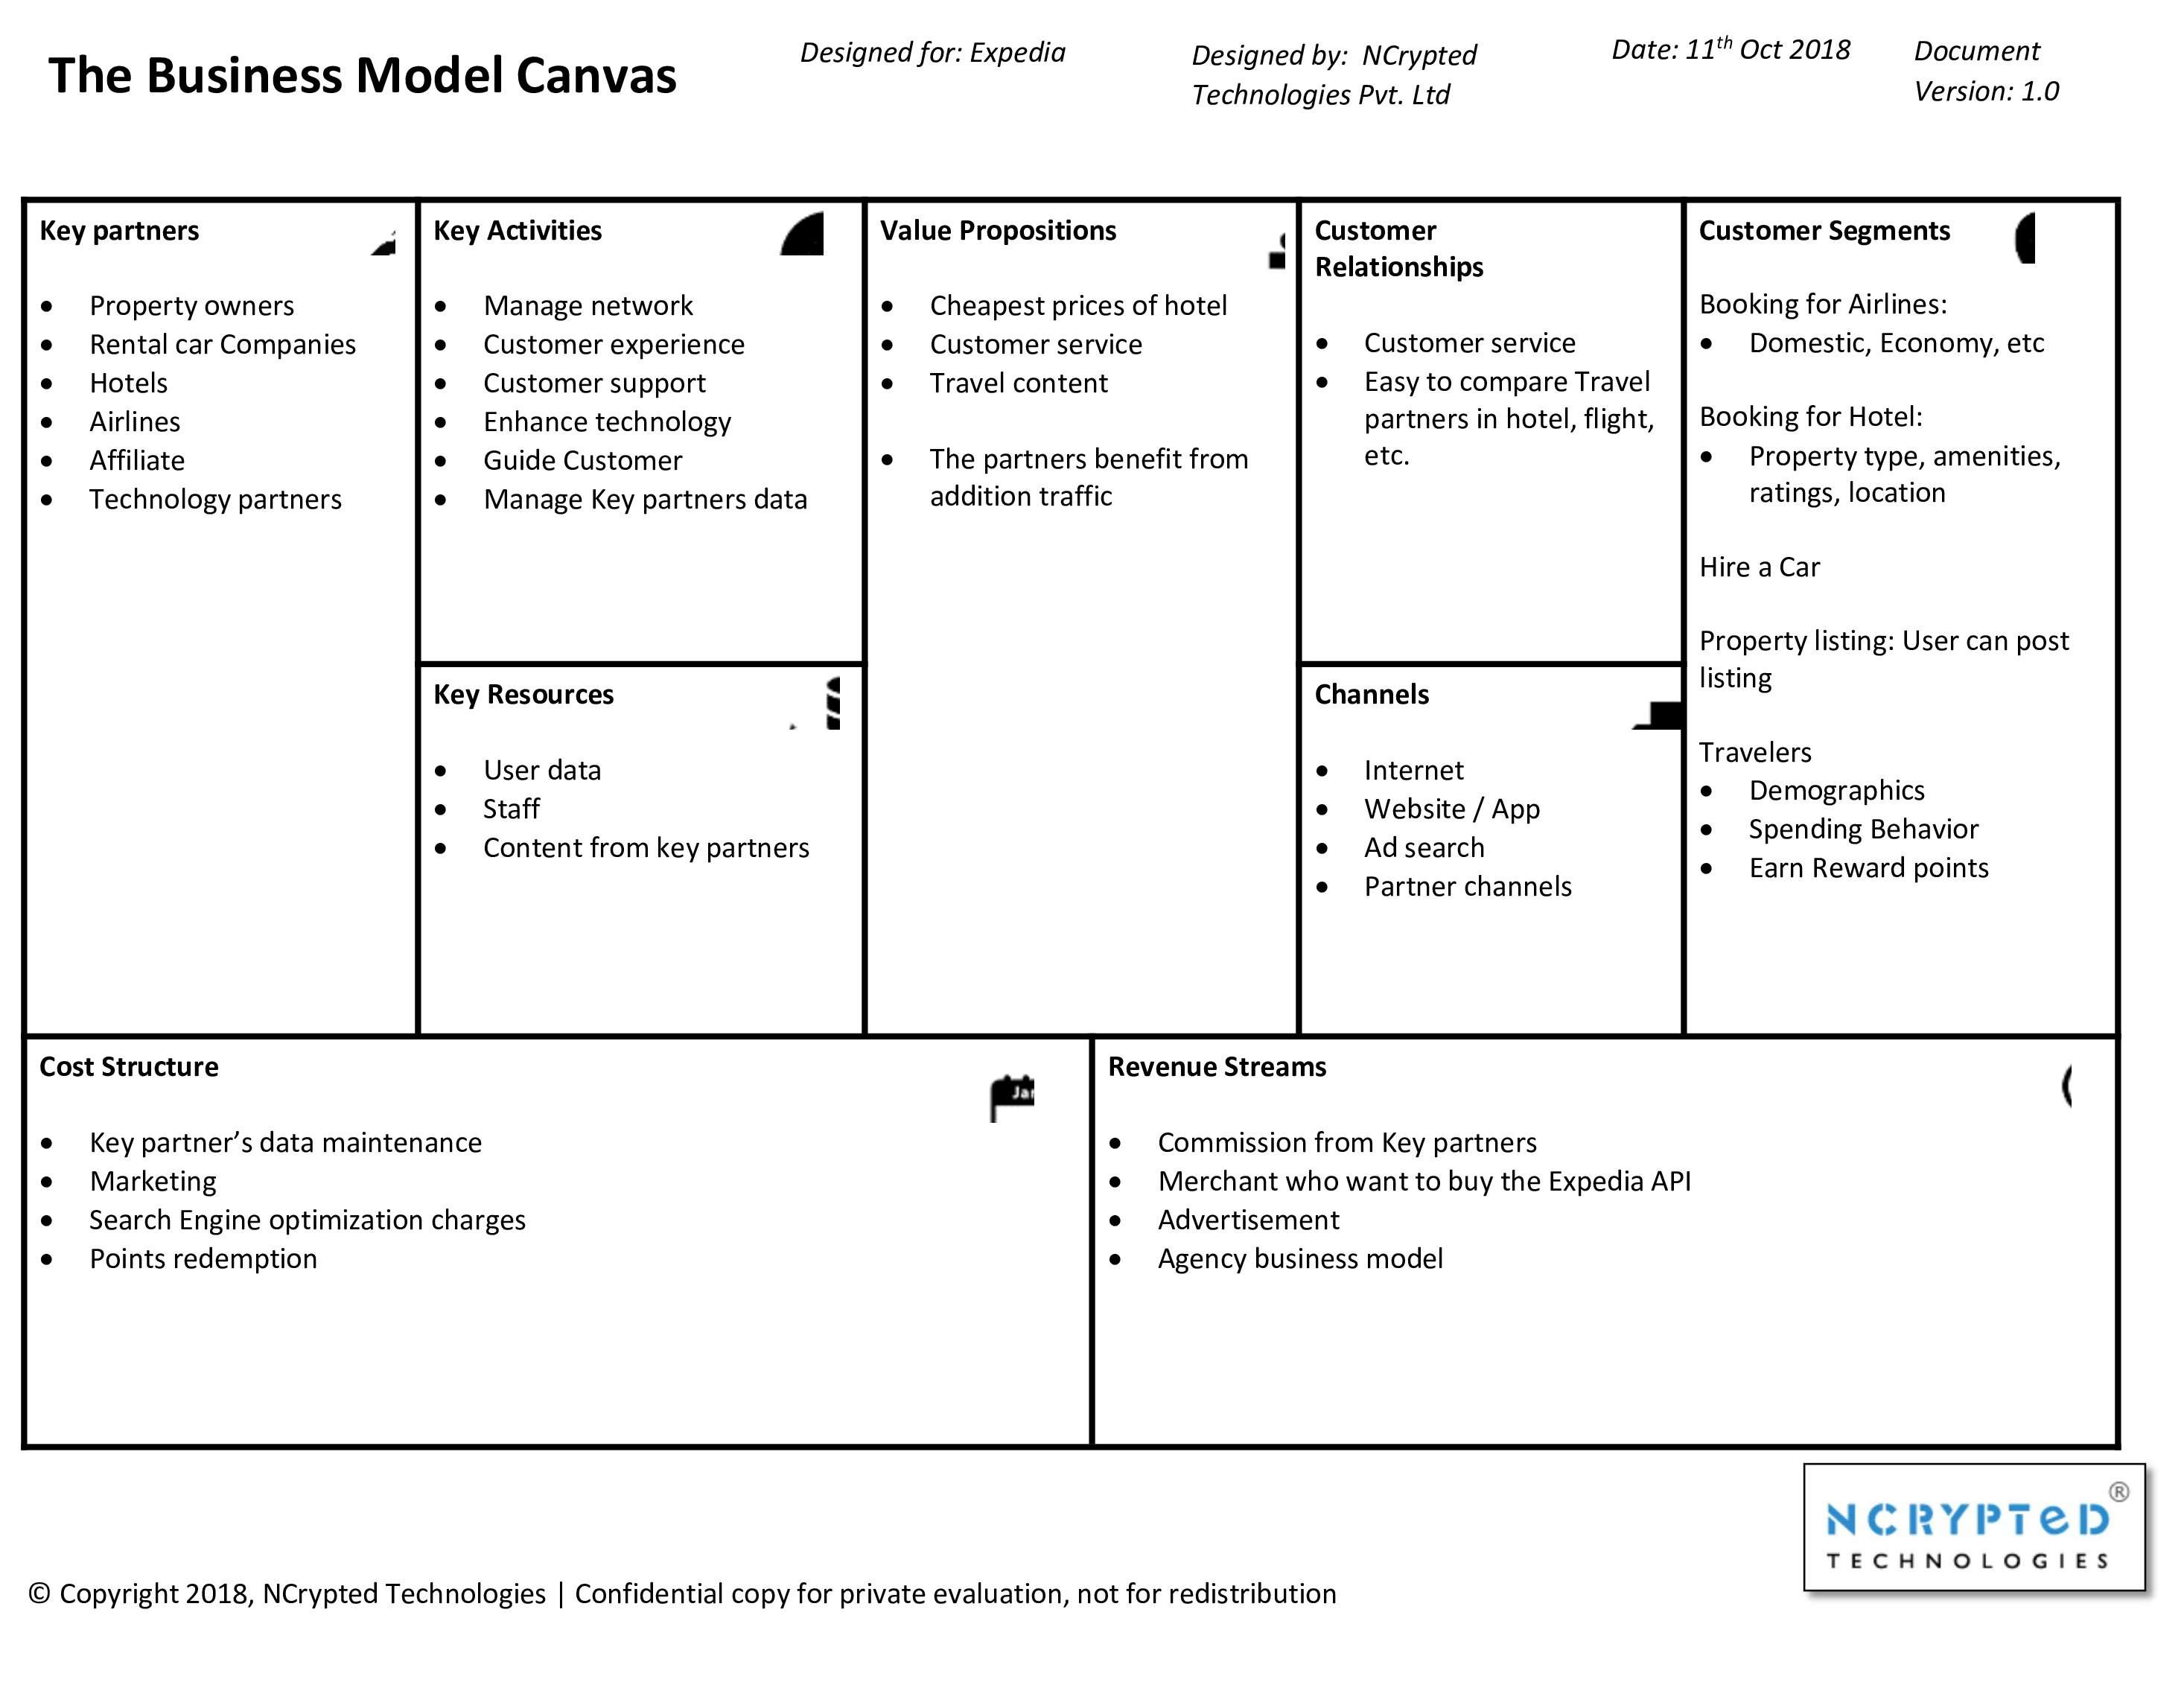 Expedia Business Model Canvas